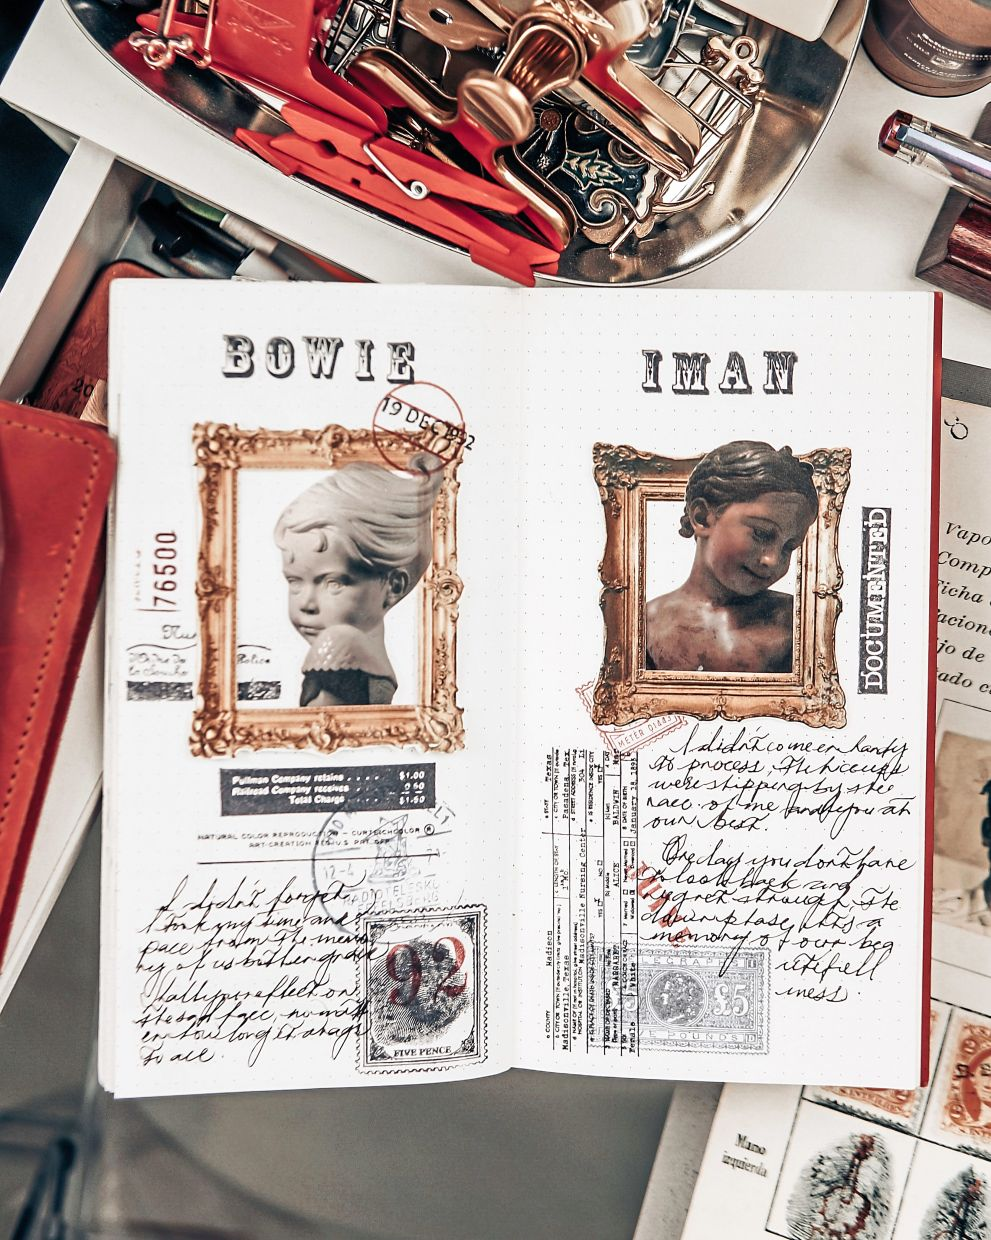 Khairul's collage journal, inspired by power couple singer David Bowie and supermodel Iman, and author Nick Bantock.